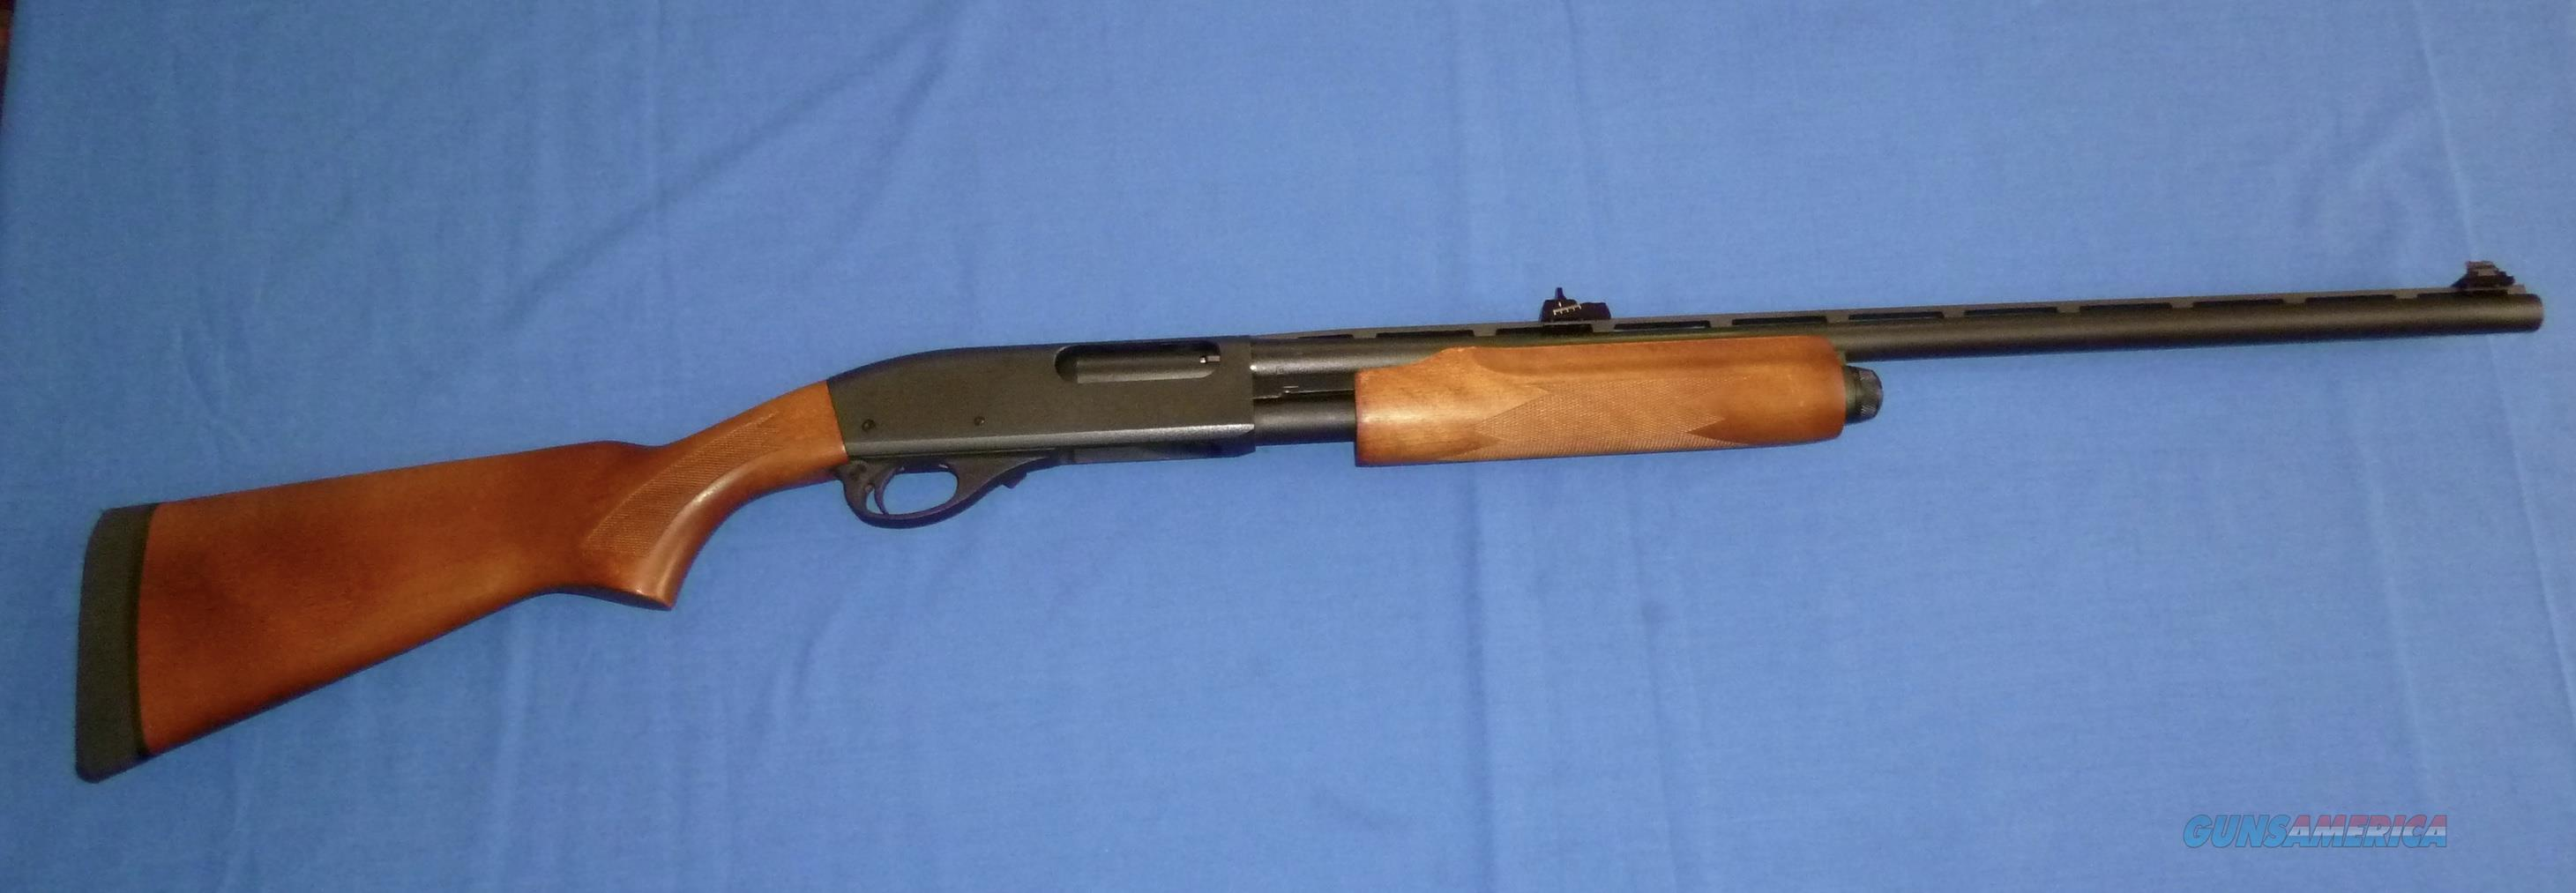 REMINGTON 870 EXPRESS MAGNUM 20 GAUGE PUMP SHOTGUN W/REMOVABLE RIFLE SIGHTS  Guns > Shotguns > Remington Shotguns  > Pump > Hunting